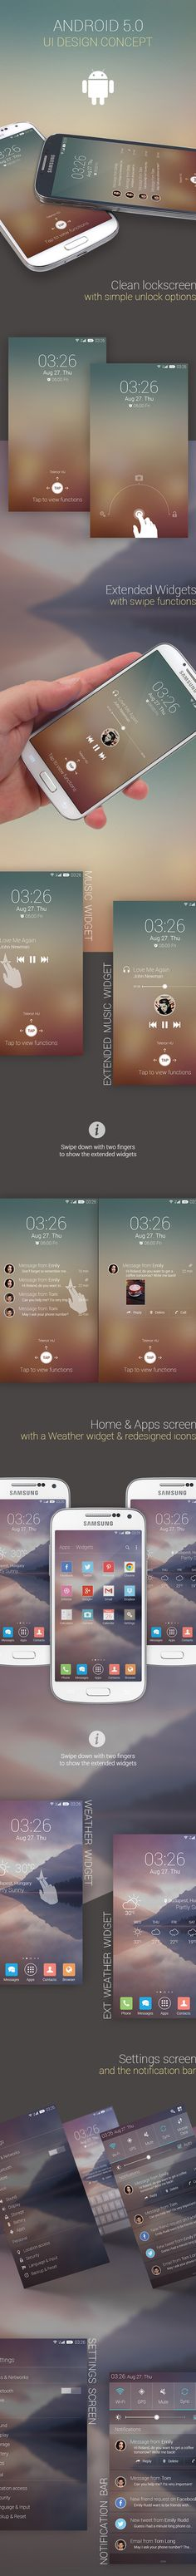 UI Design Concepts to Boost User Experience #mobileUI #UIDesign #UX #UIConcepts #WebUI